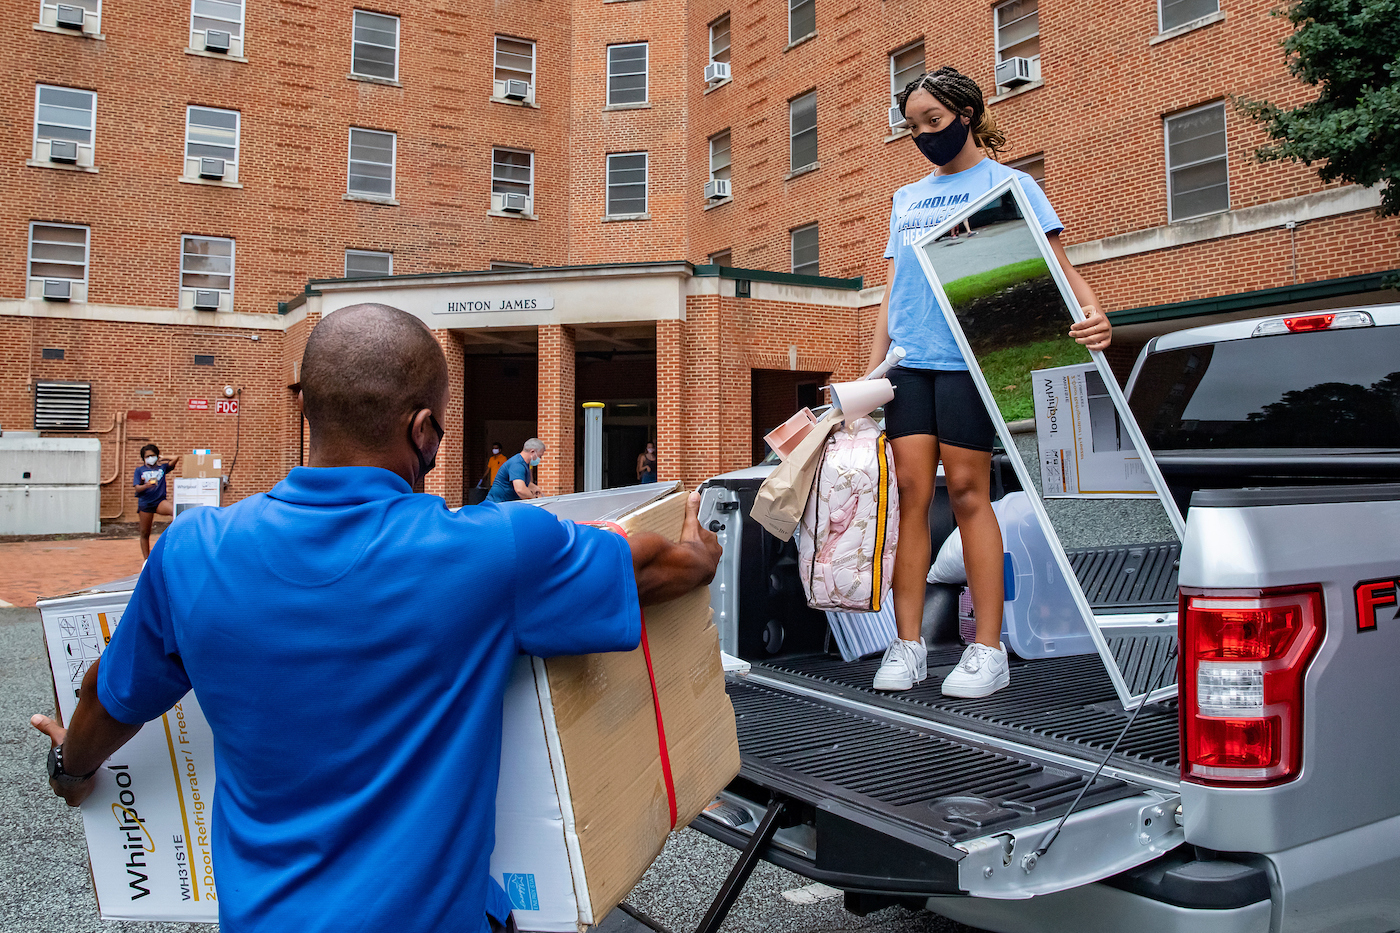 A man helps a student unload belongings from a pickup to move into Hinton James dorm.